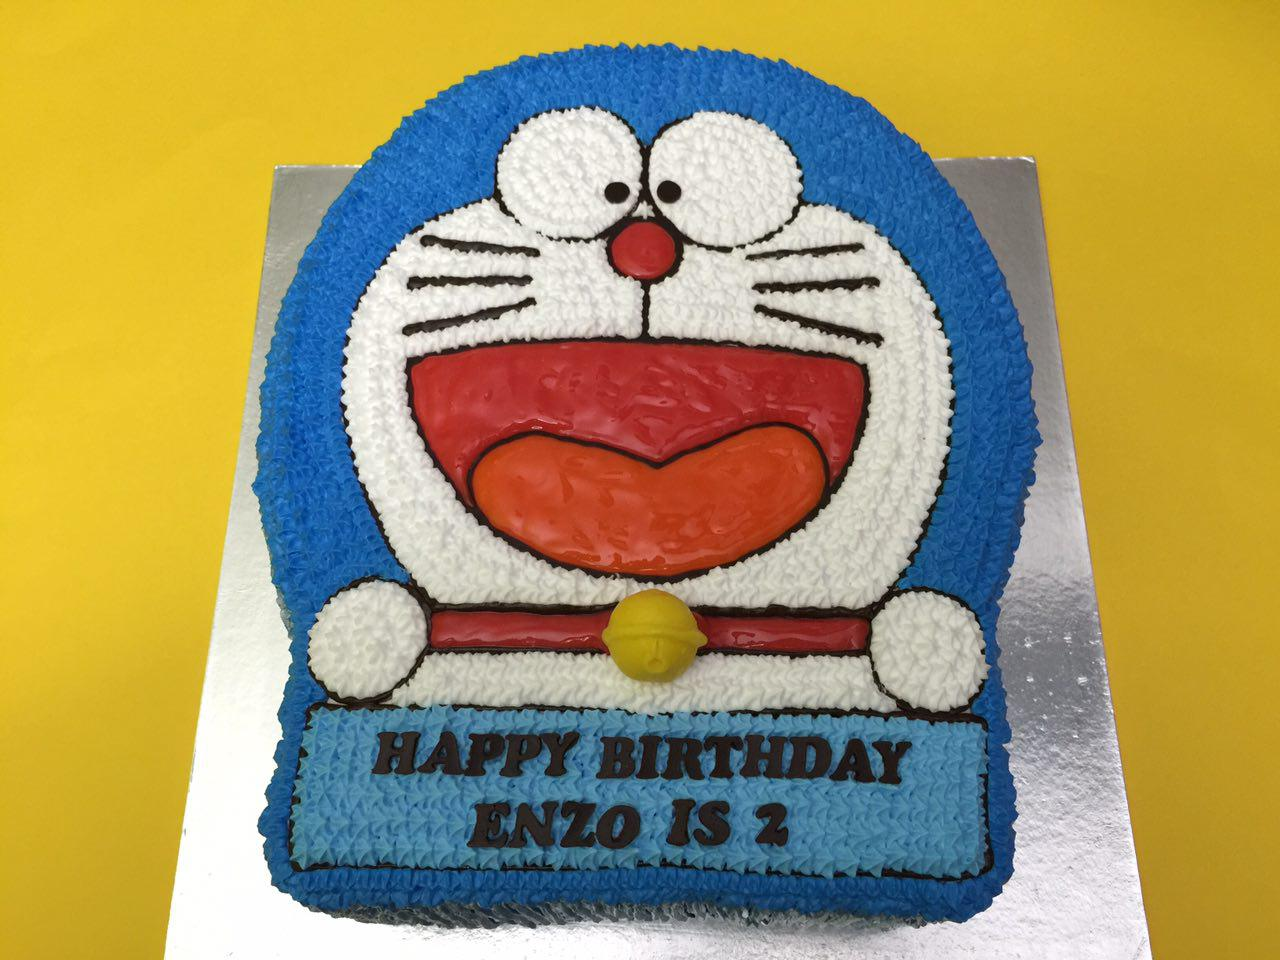 Doraemon Cakes Singapore Favourite Childhood Character